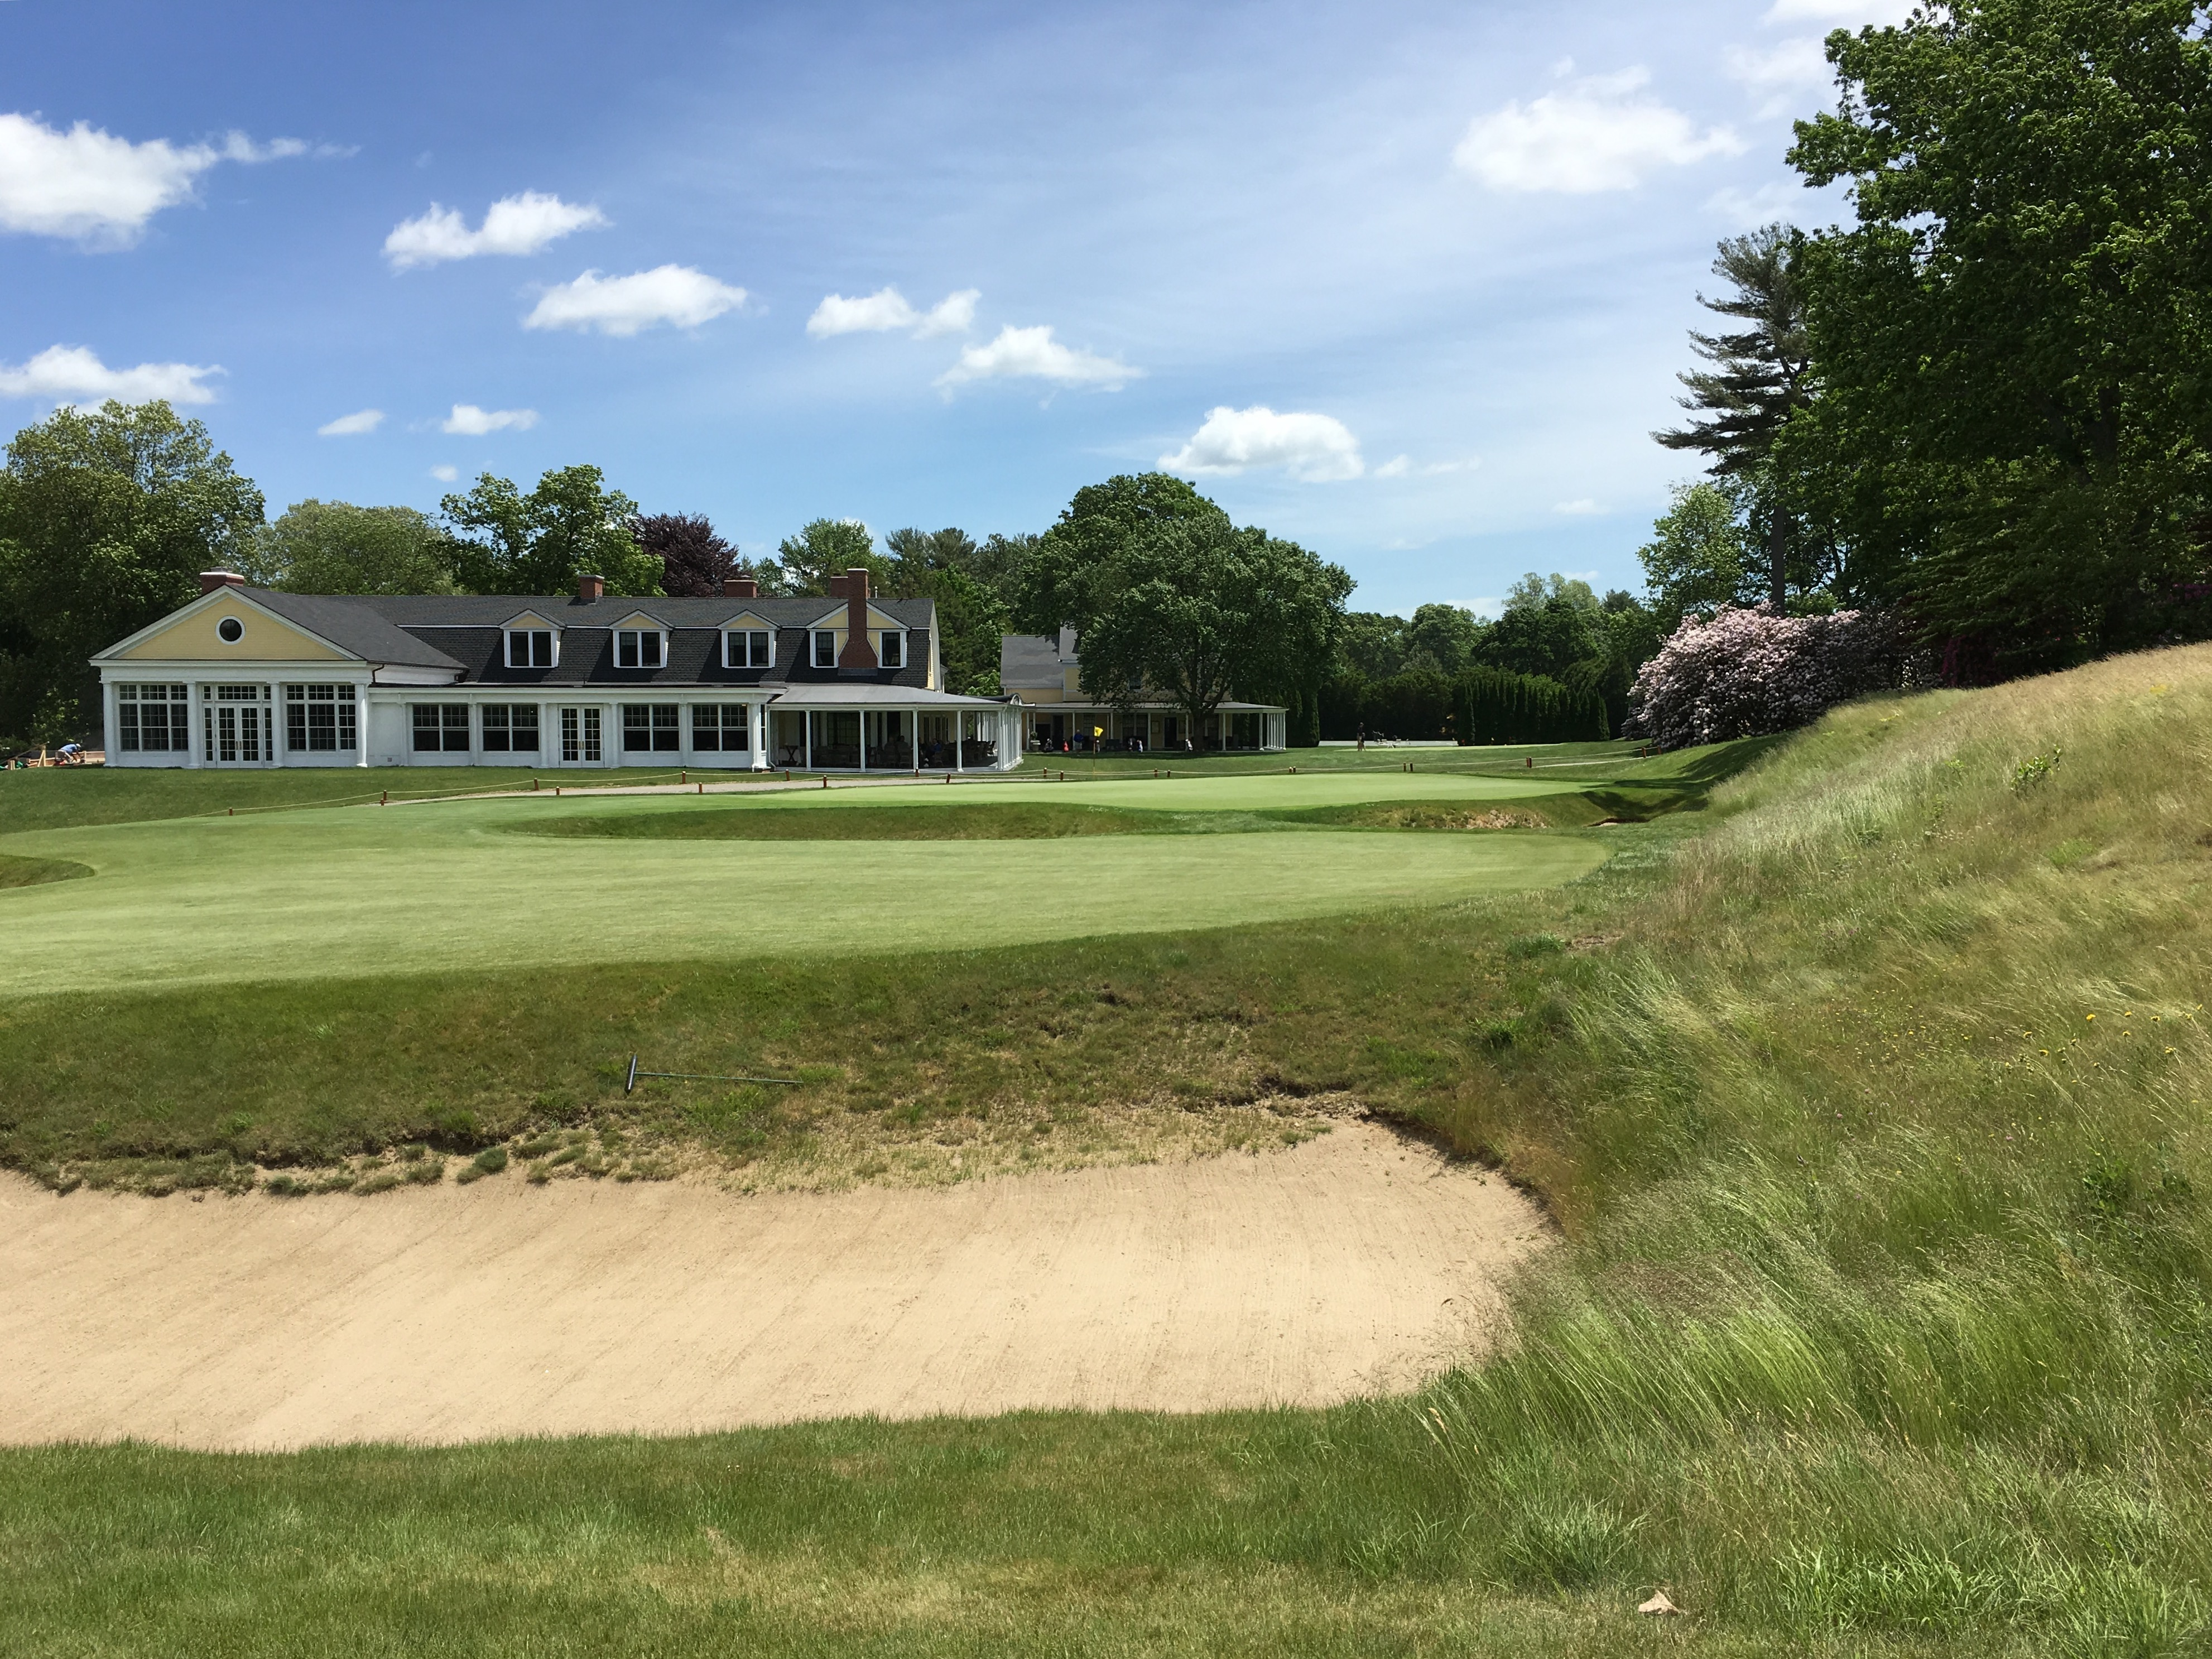 #18 - Par 4 - Cross bunkers on the approach